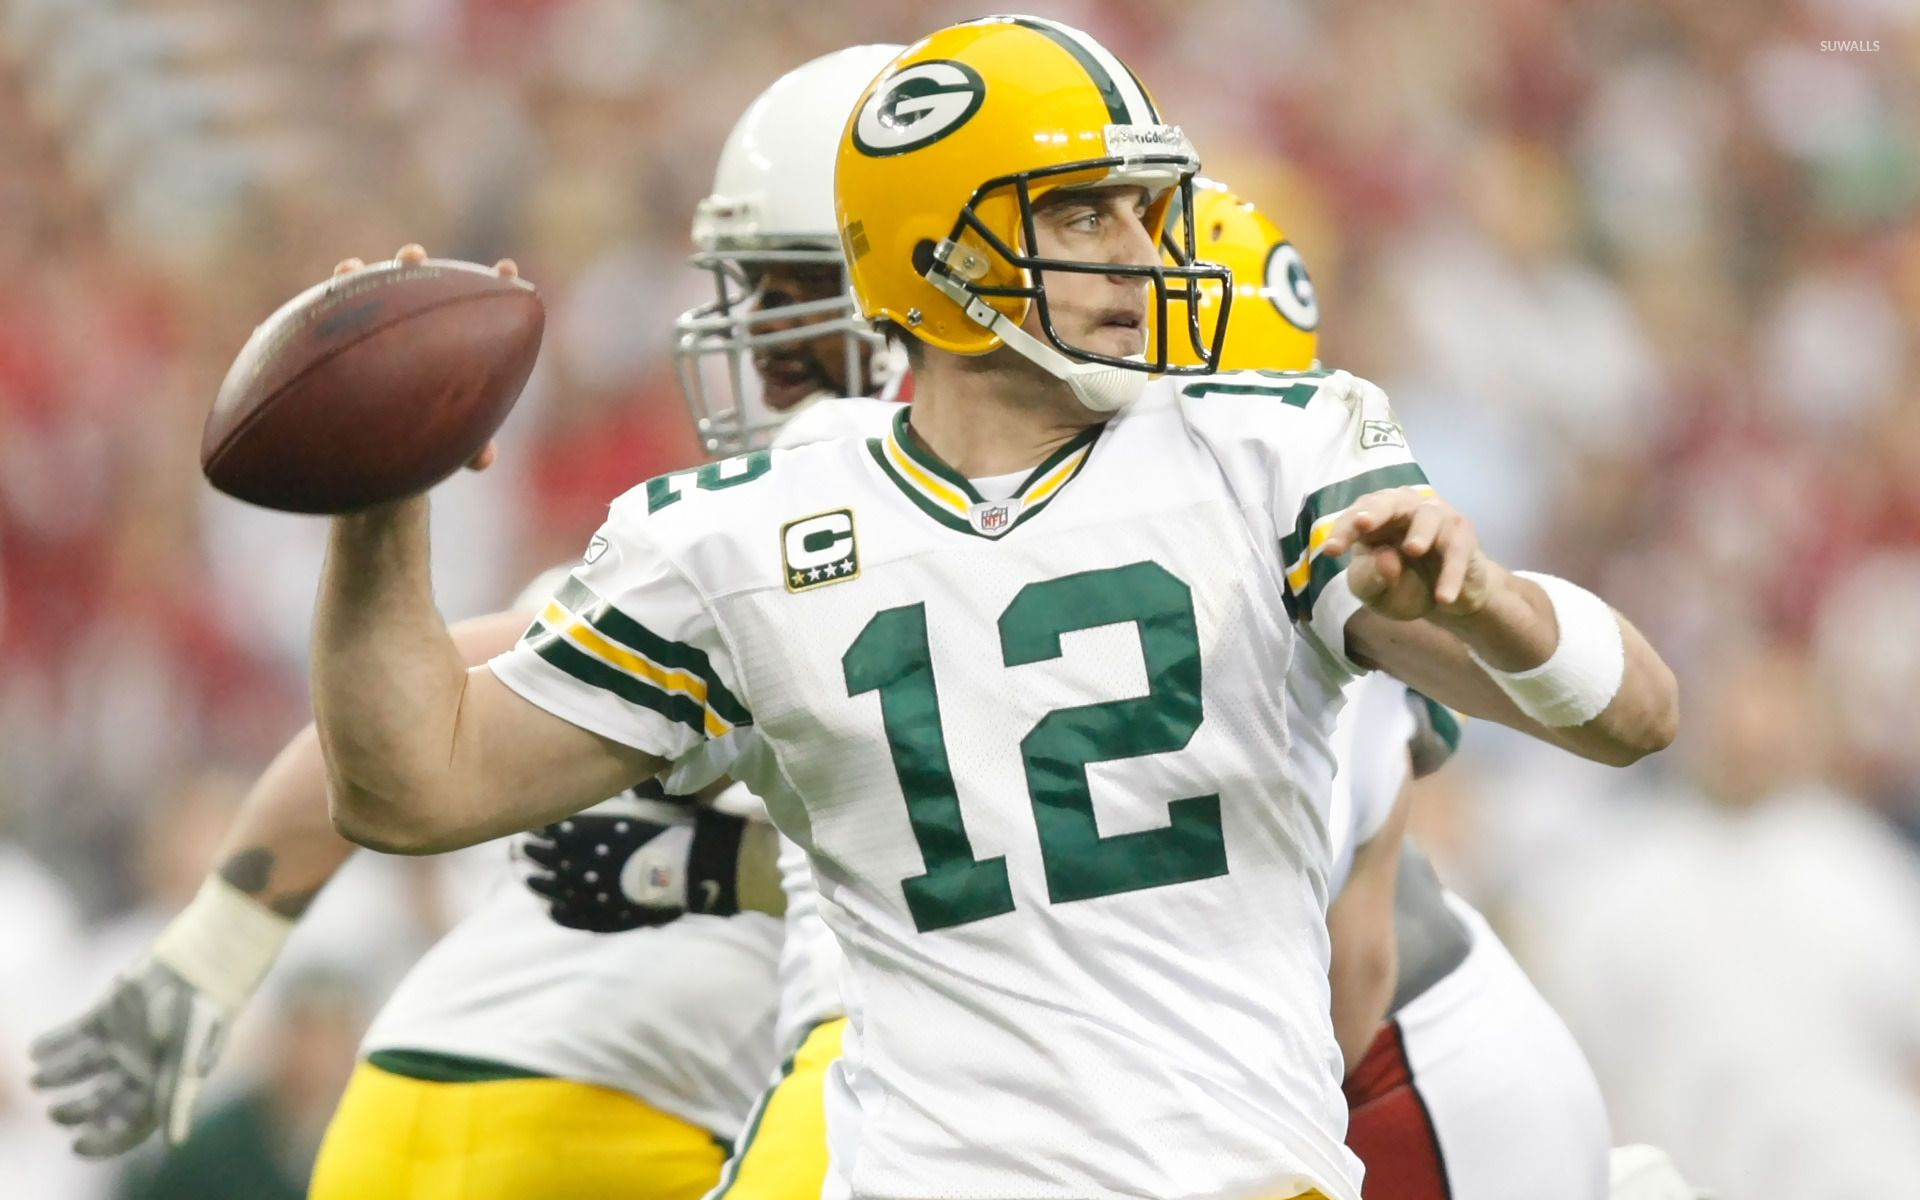 Aaron Rodgers Hd Wallpapers Backgrounds Wallpaper Sports Wallpapers Aaron Rodgers Nfl Tickets